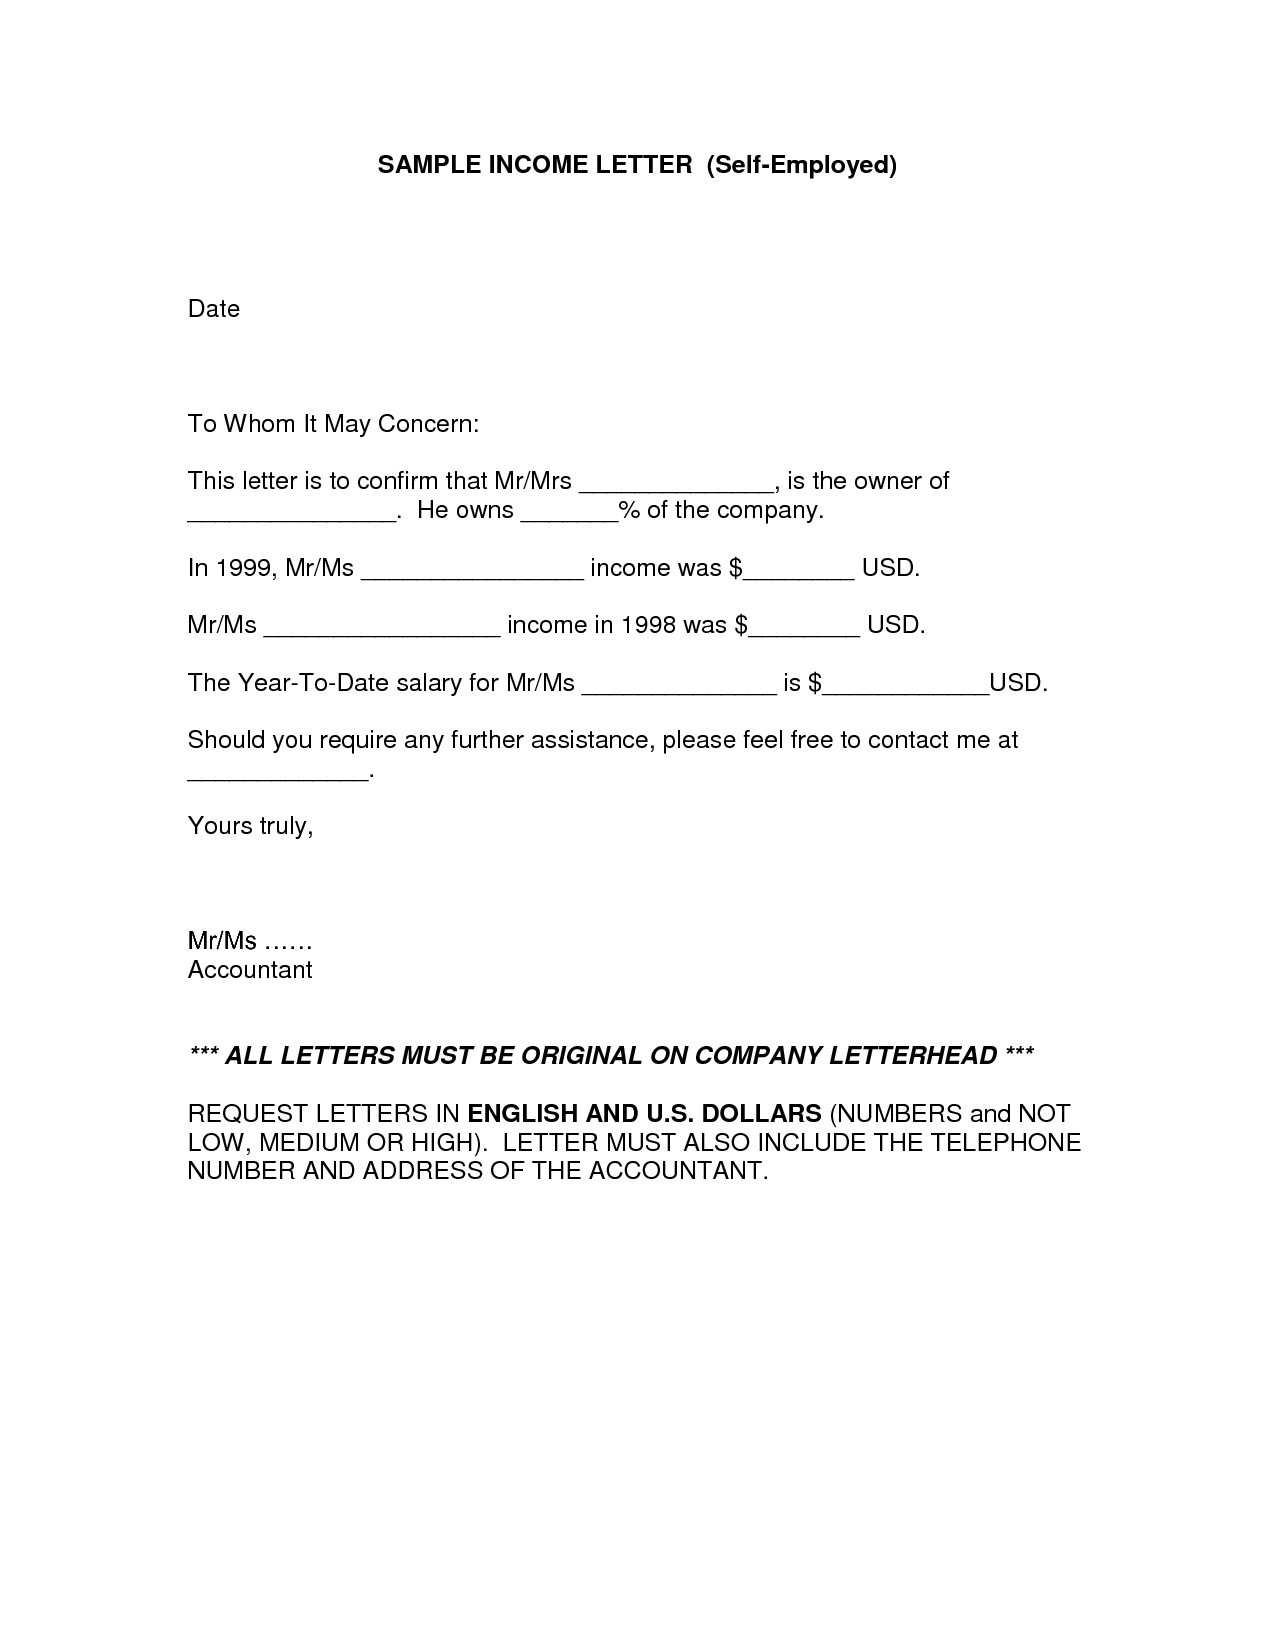 Cpa Letter for Self Employed Template - Self Employed Job Letter Sample Valid Job Letter for Self Employed